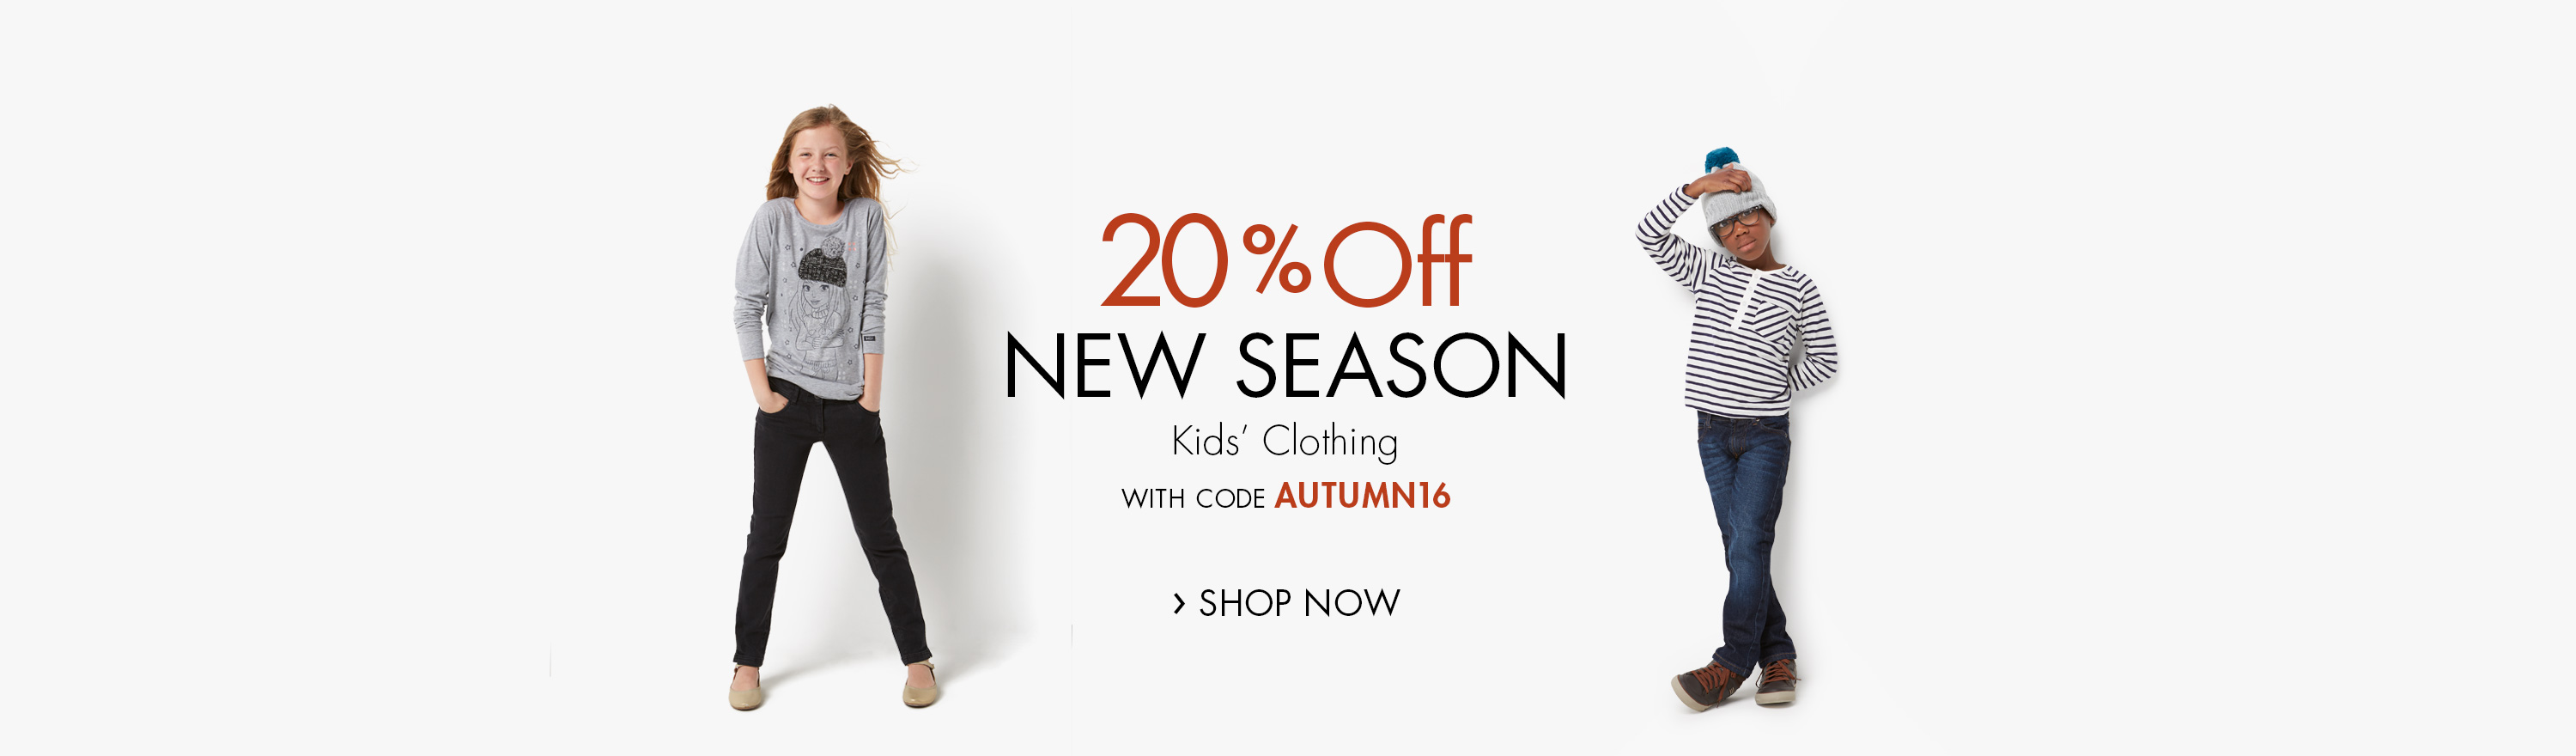 20% Off Kid's Clothing